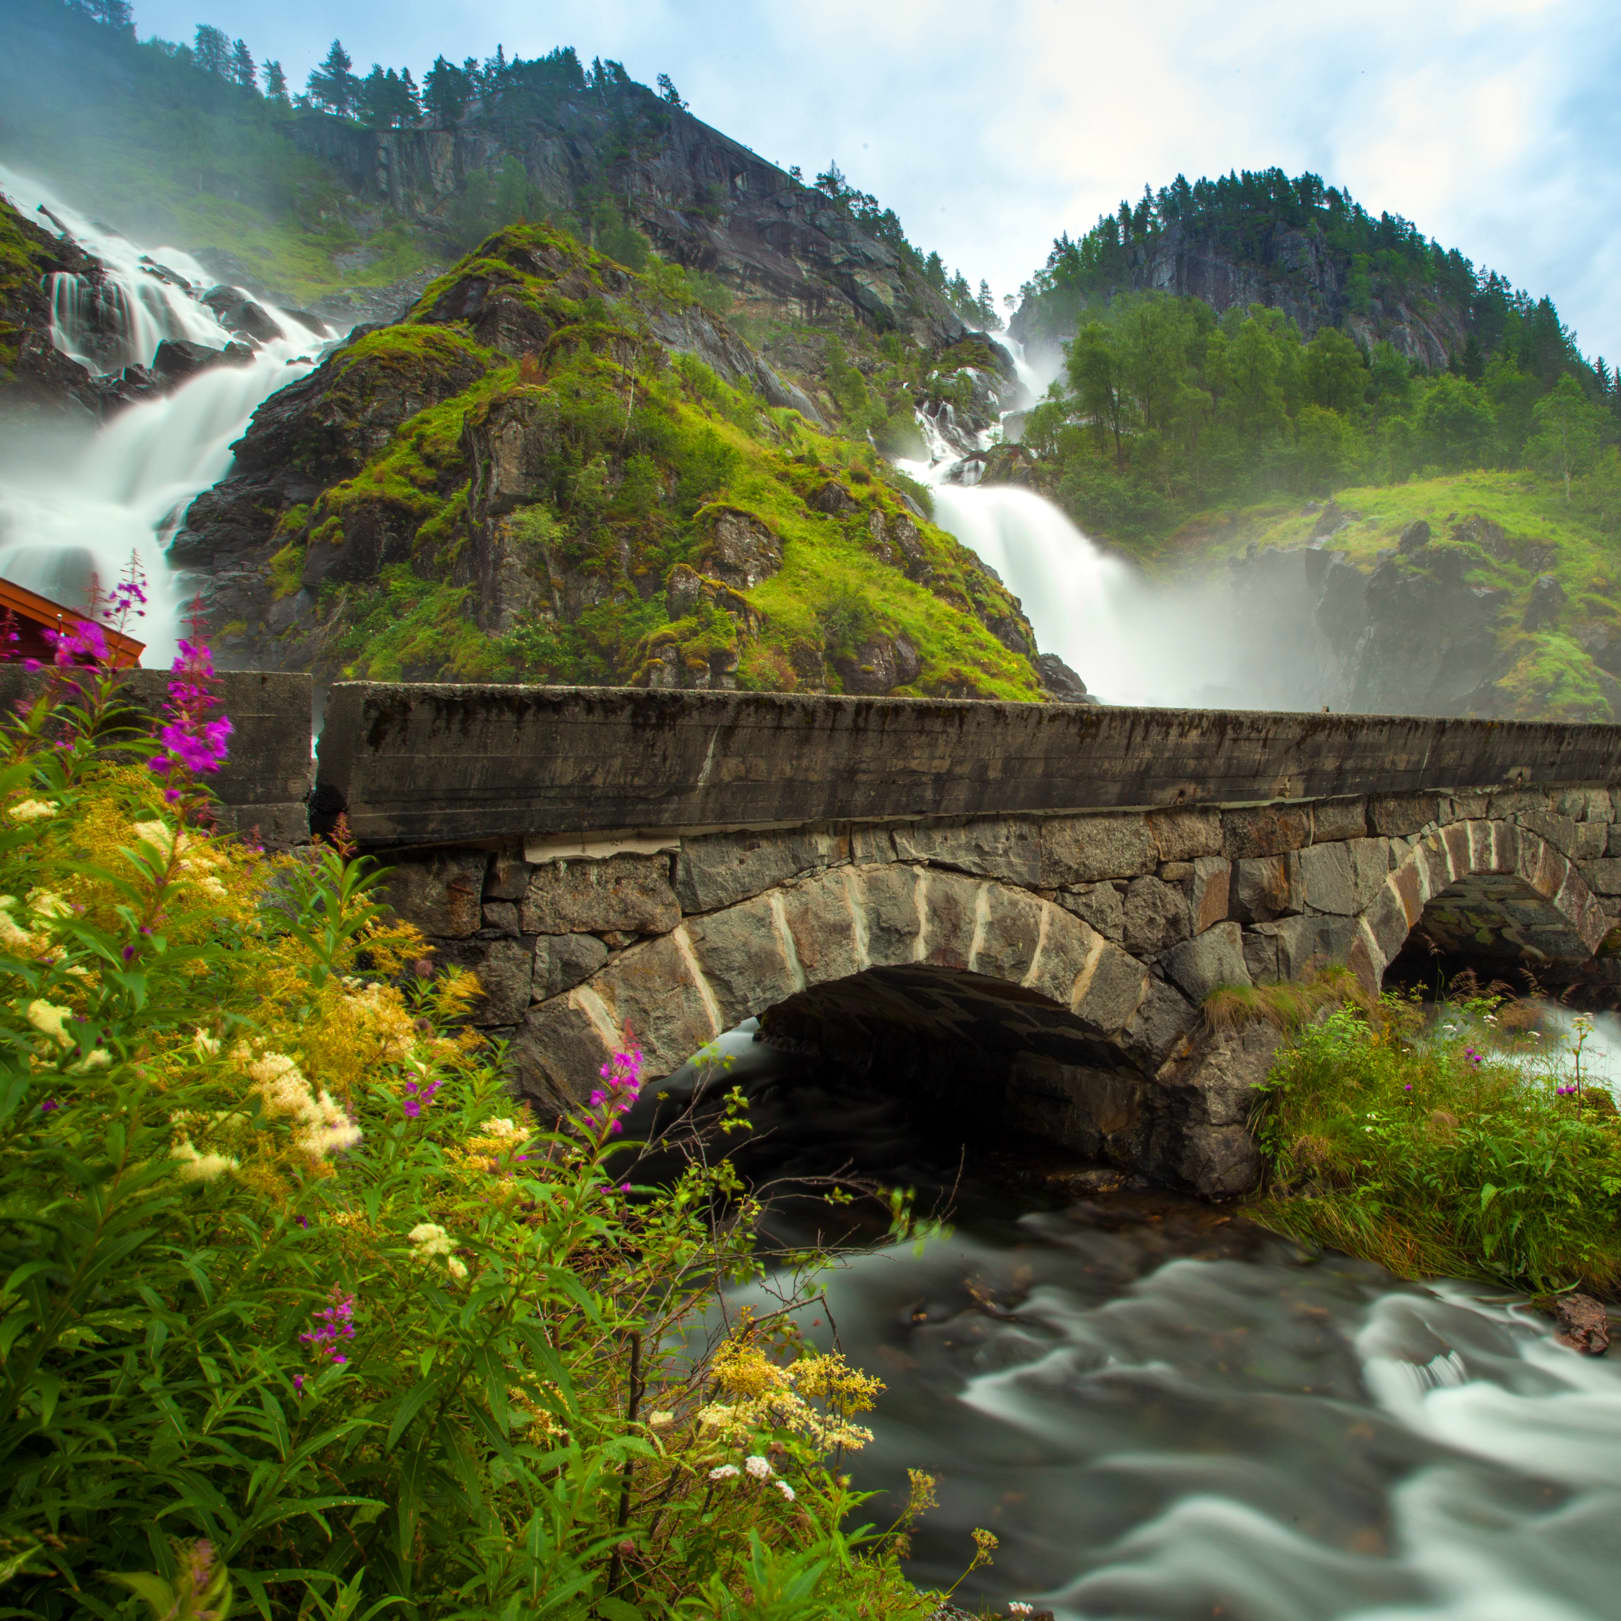 The powerfull Låtefoss is running down the mountainside in the summer time with a historic stone bridge with two arches is located by the foot of it.